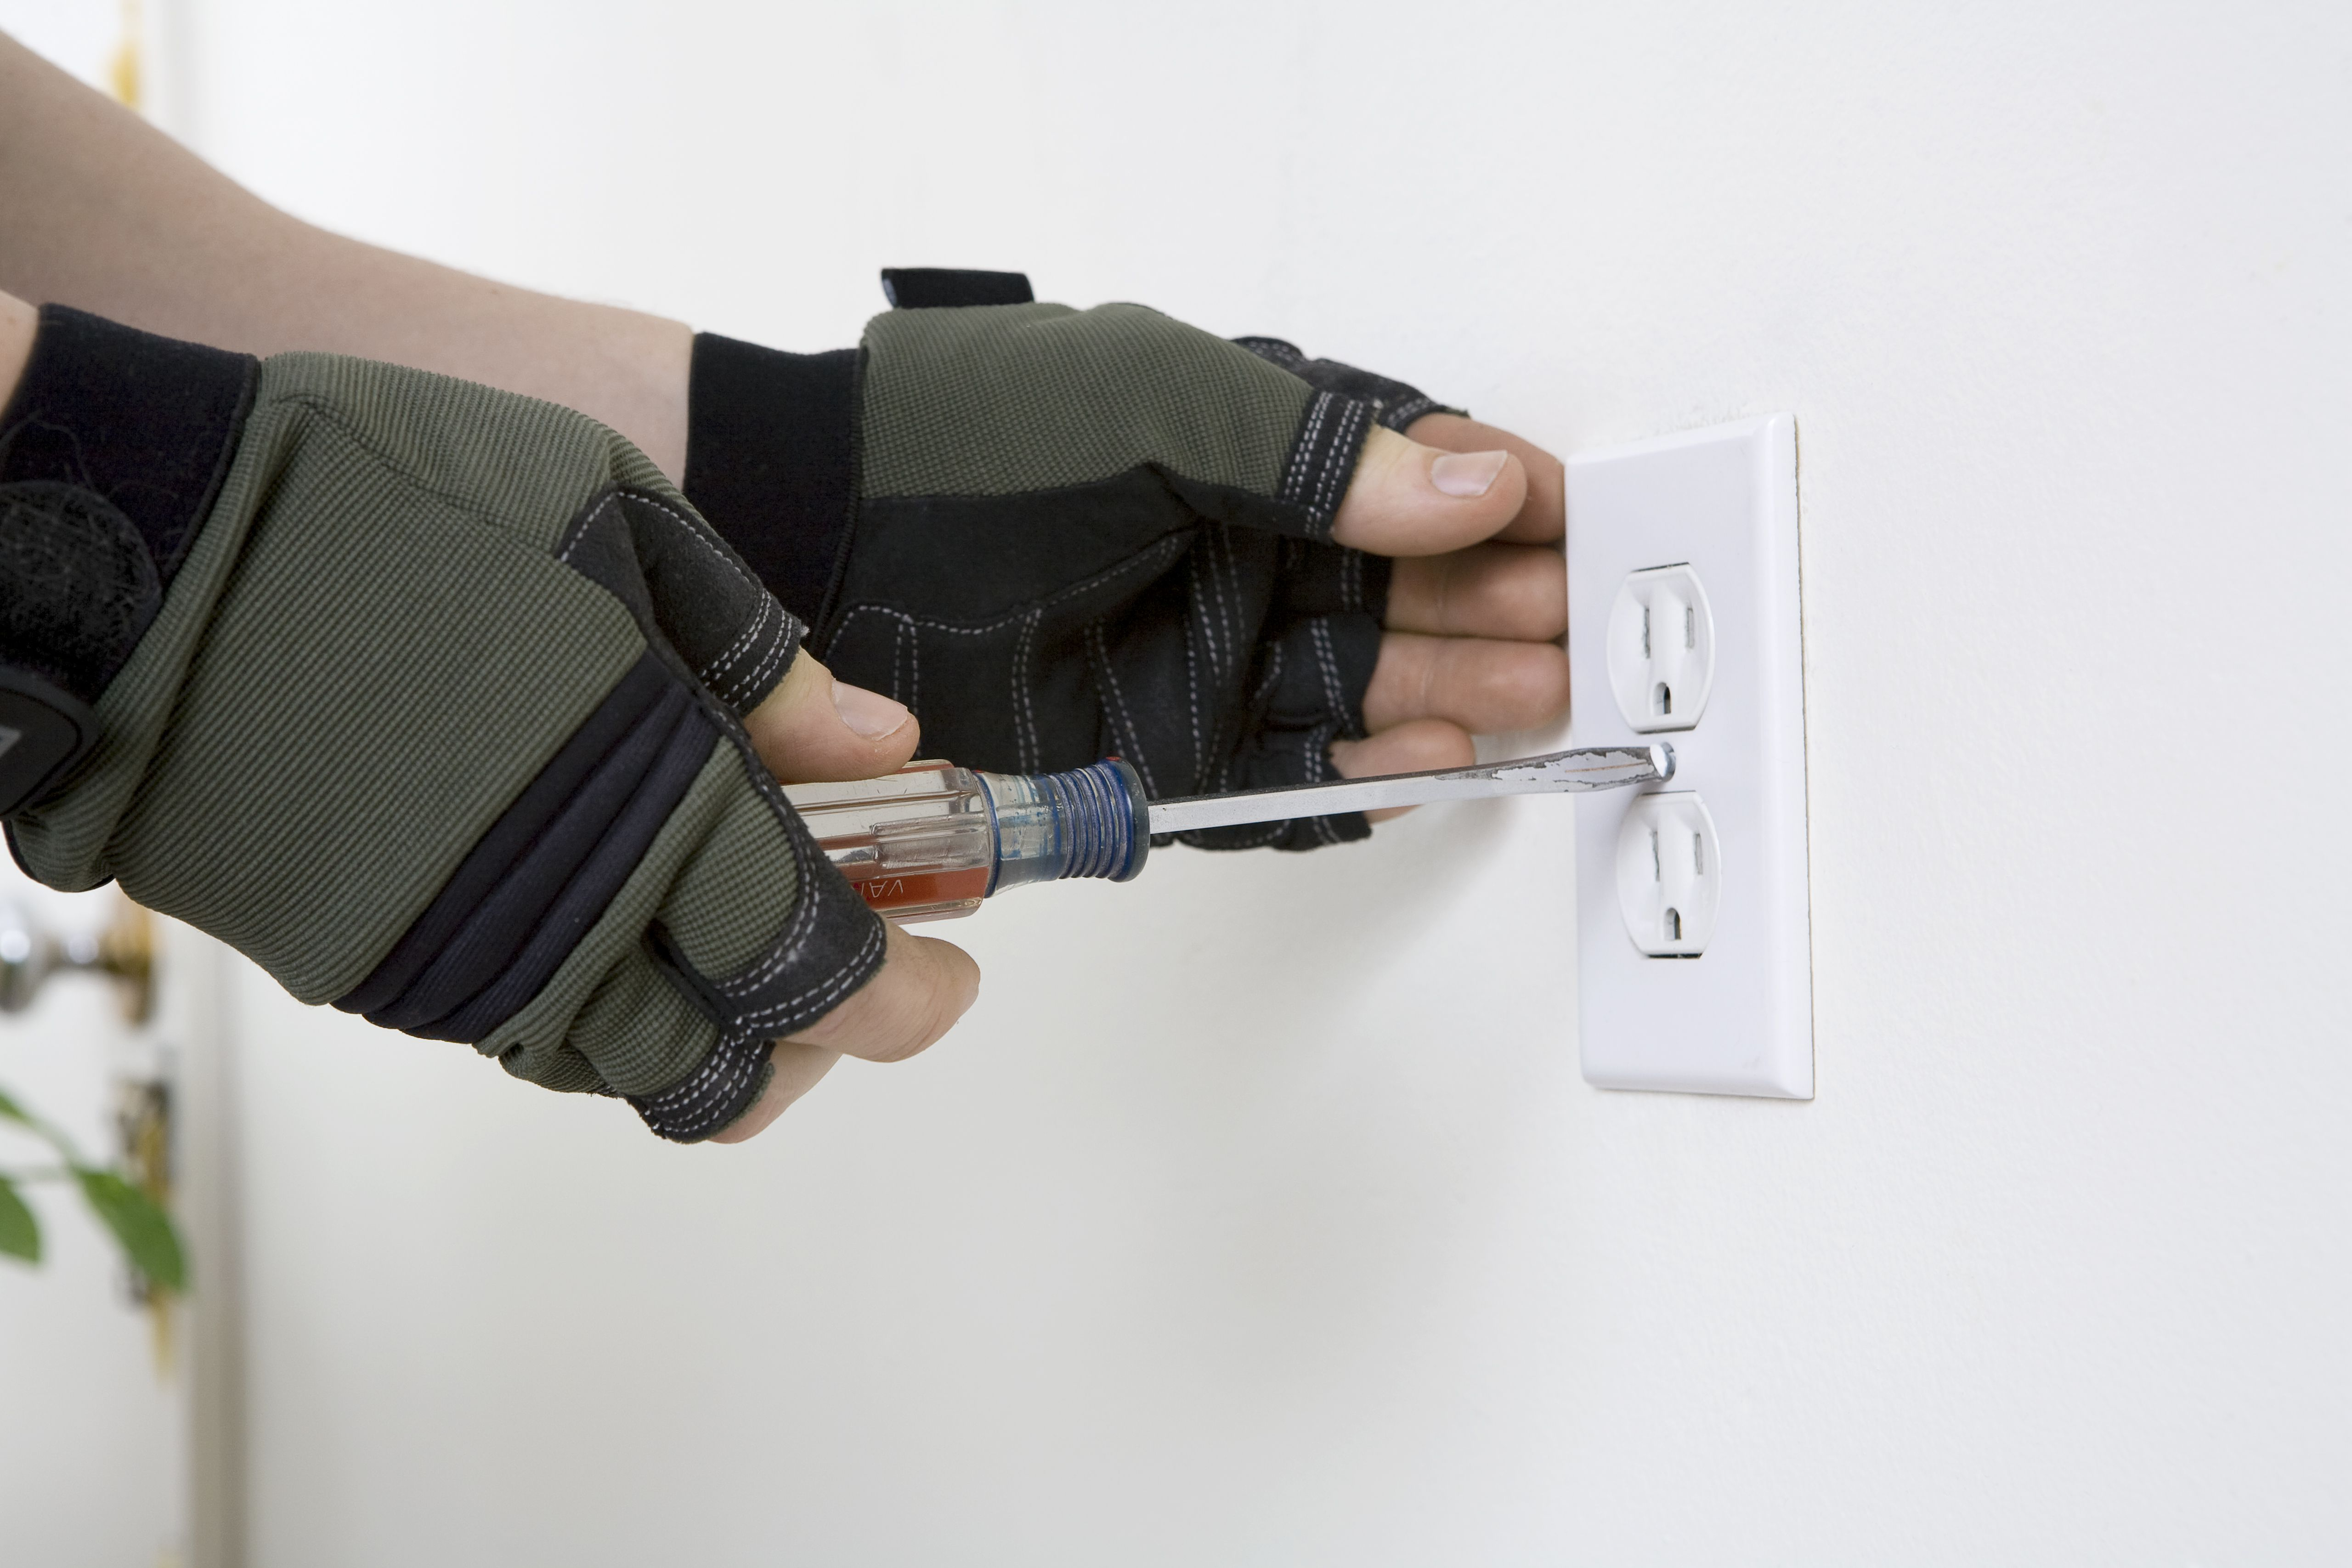 How to Side Wire an Electrical Outlet